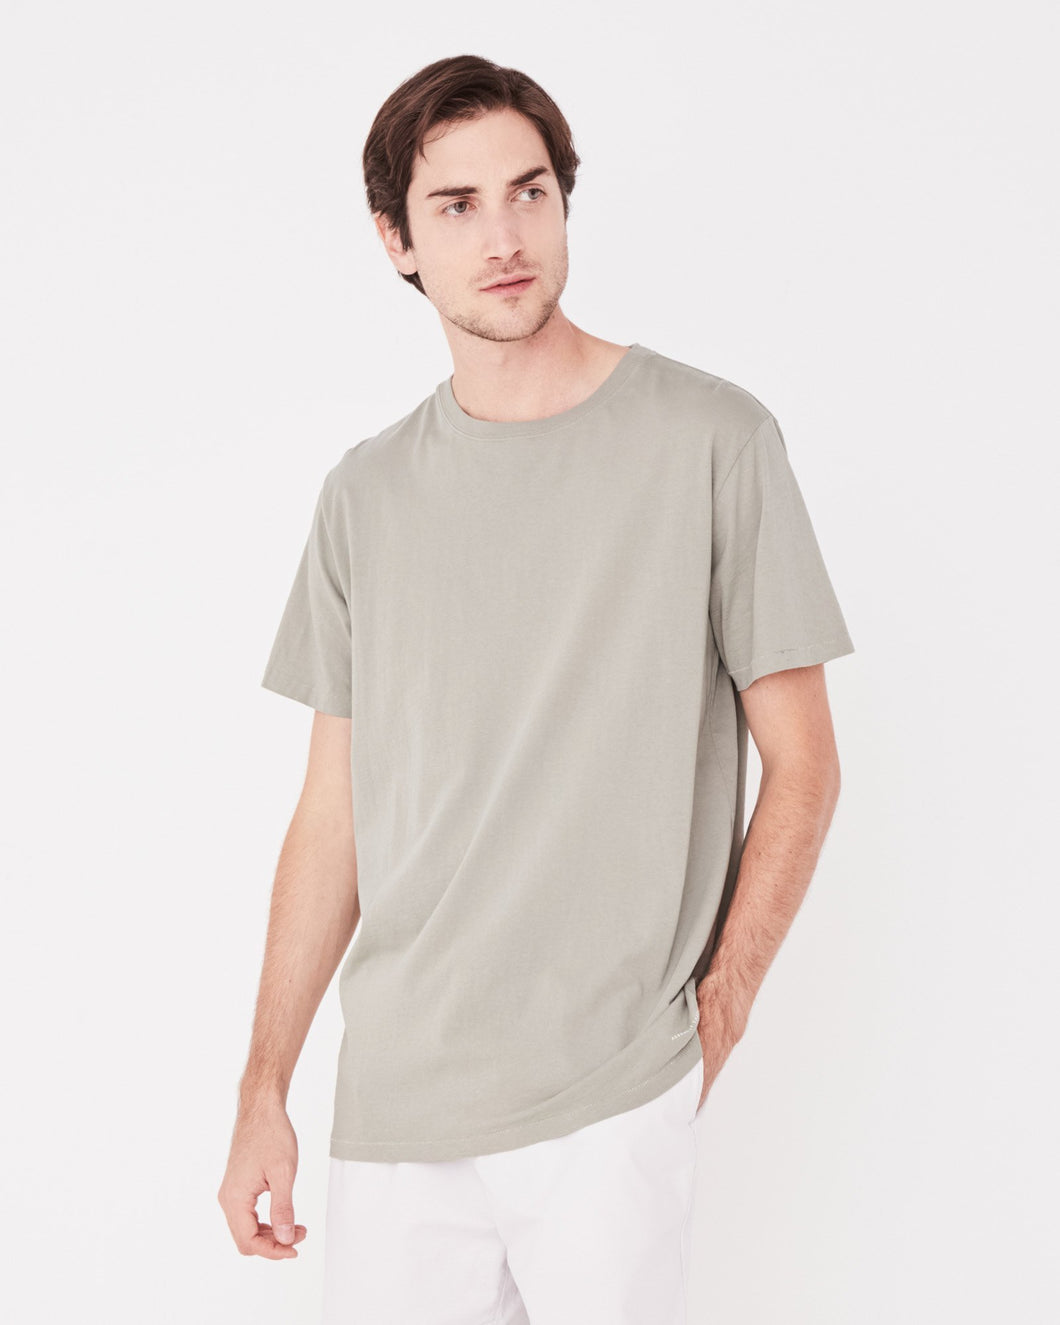 Assembly Label Standard T-Shirt Seagrass